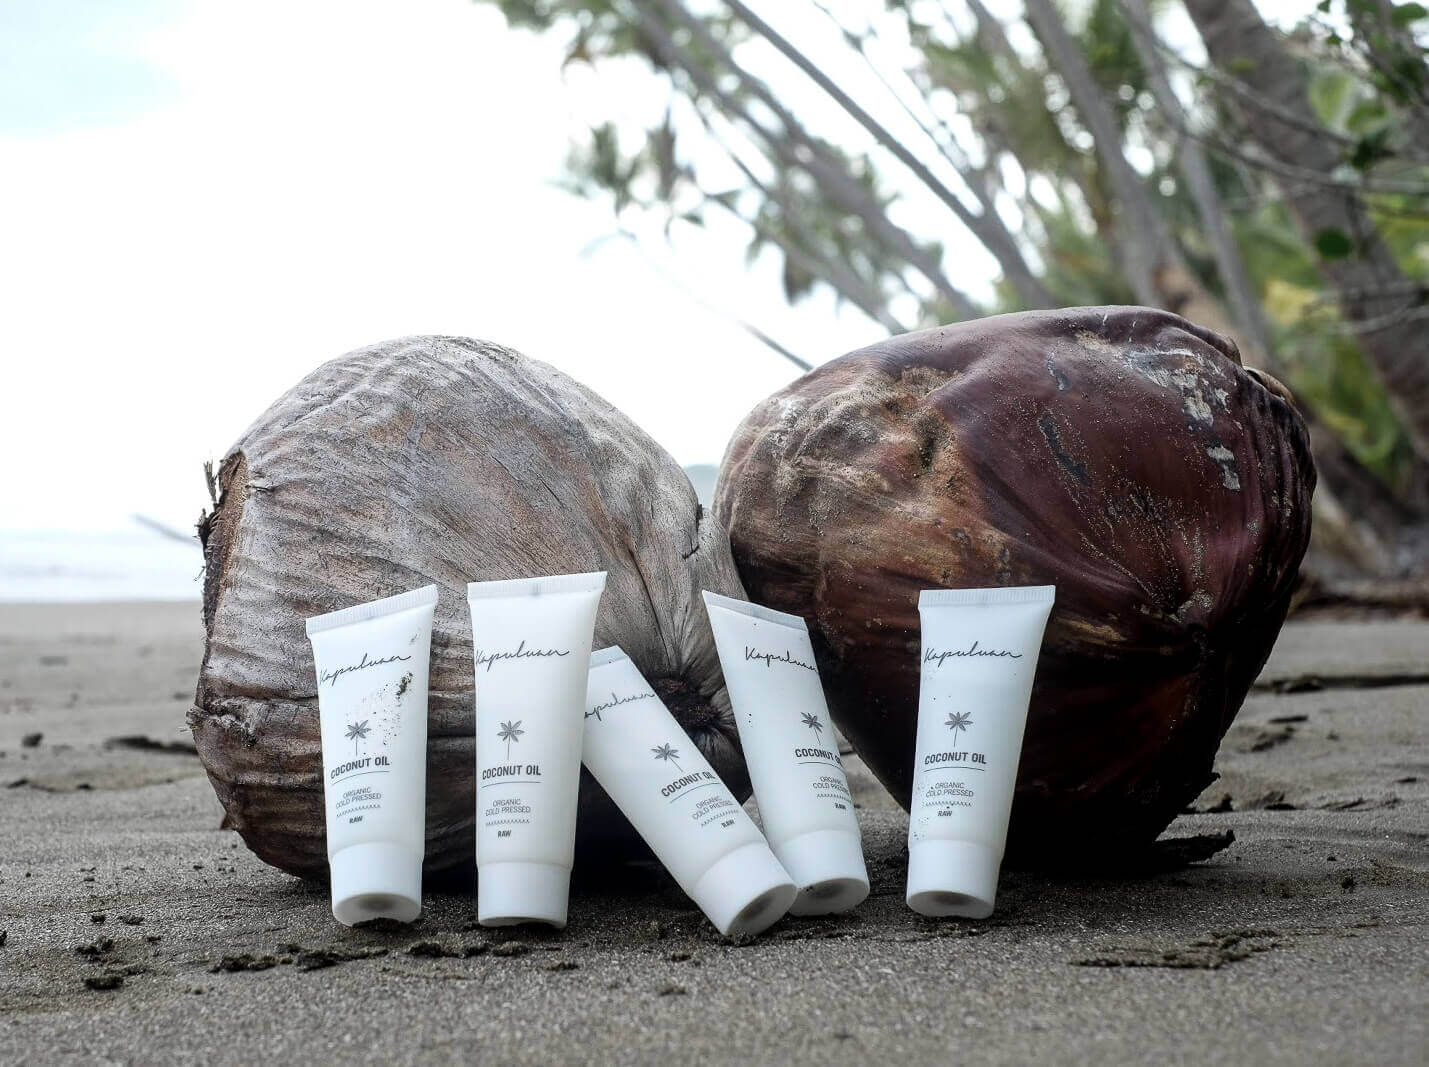 Kapuluan raw organic coconut oil is also available in Pocket-Size.